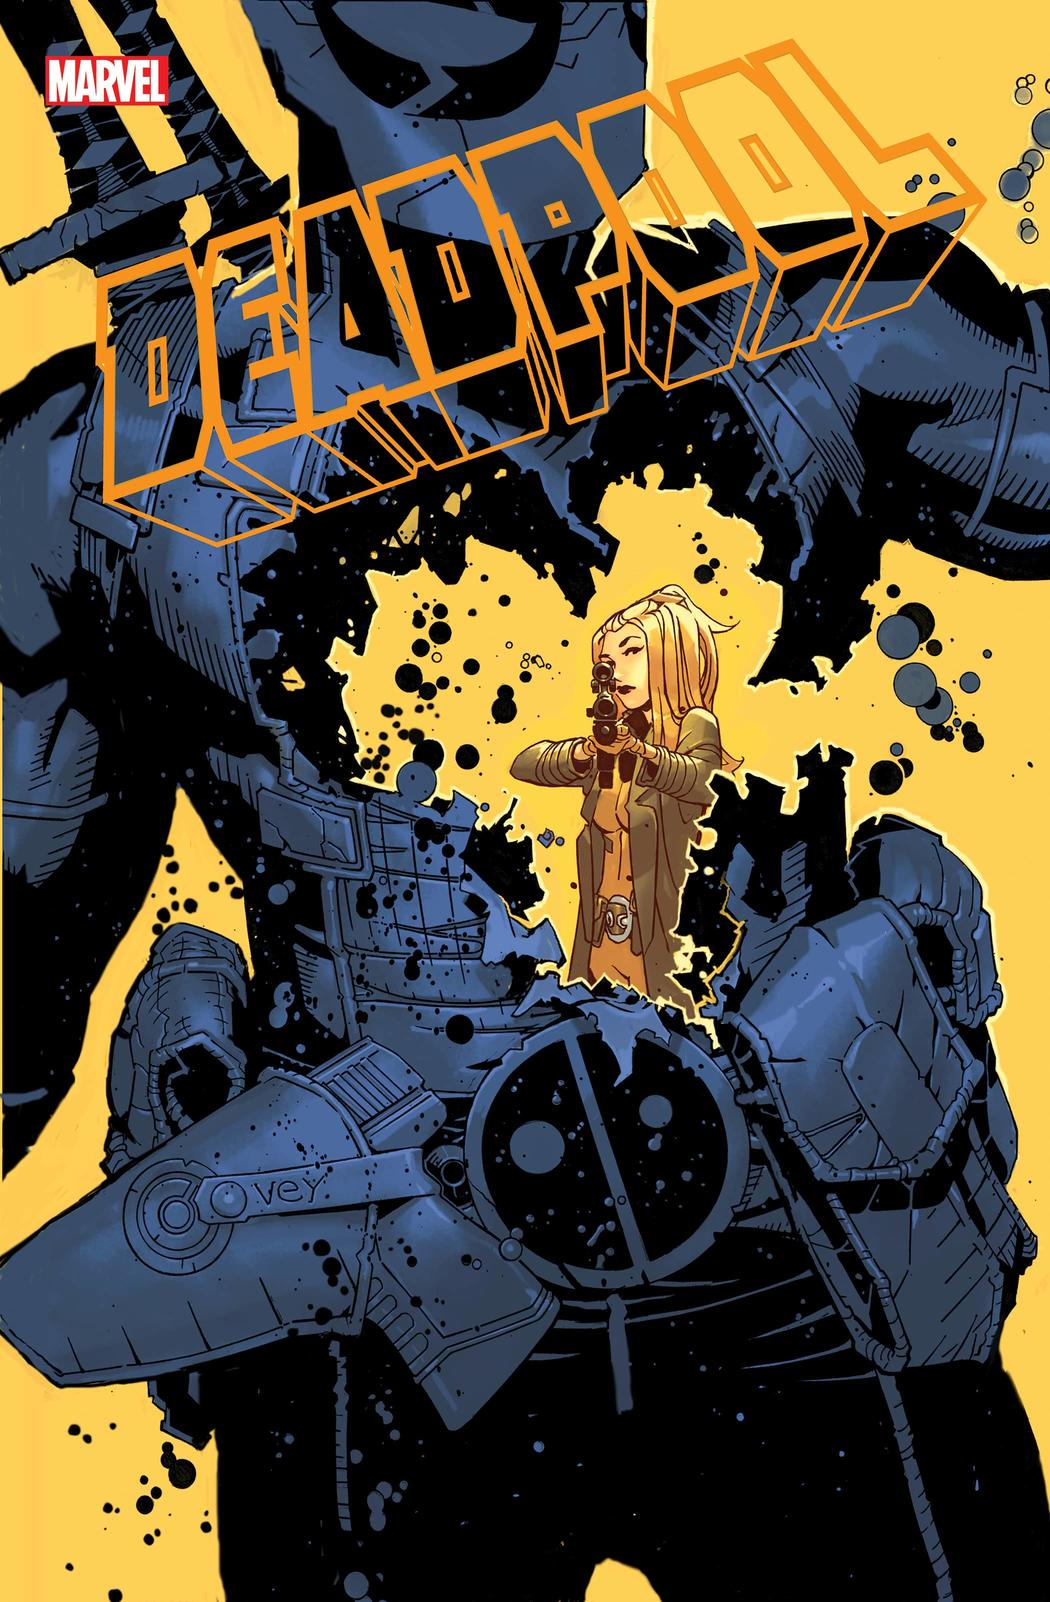 DEADPOOL #7 cover by Chris Bachalo